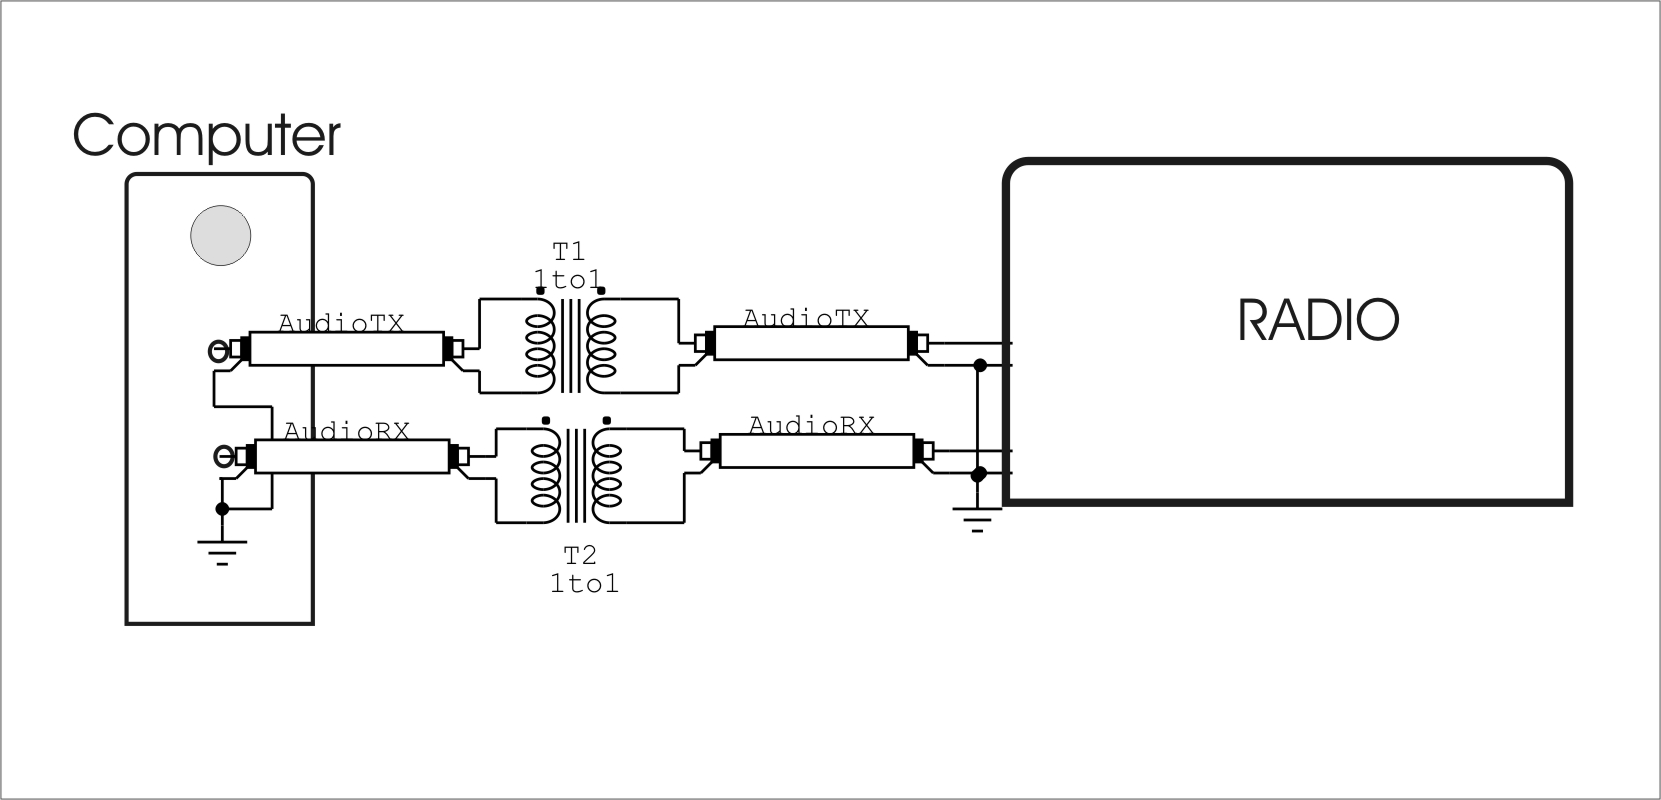 Isolation Transformer Wiring Diagram Library Isolationtransformerwiring Computer To Radio